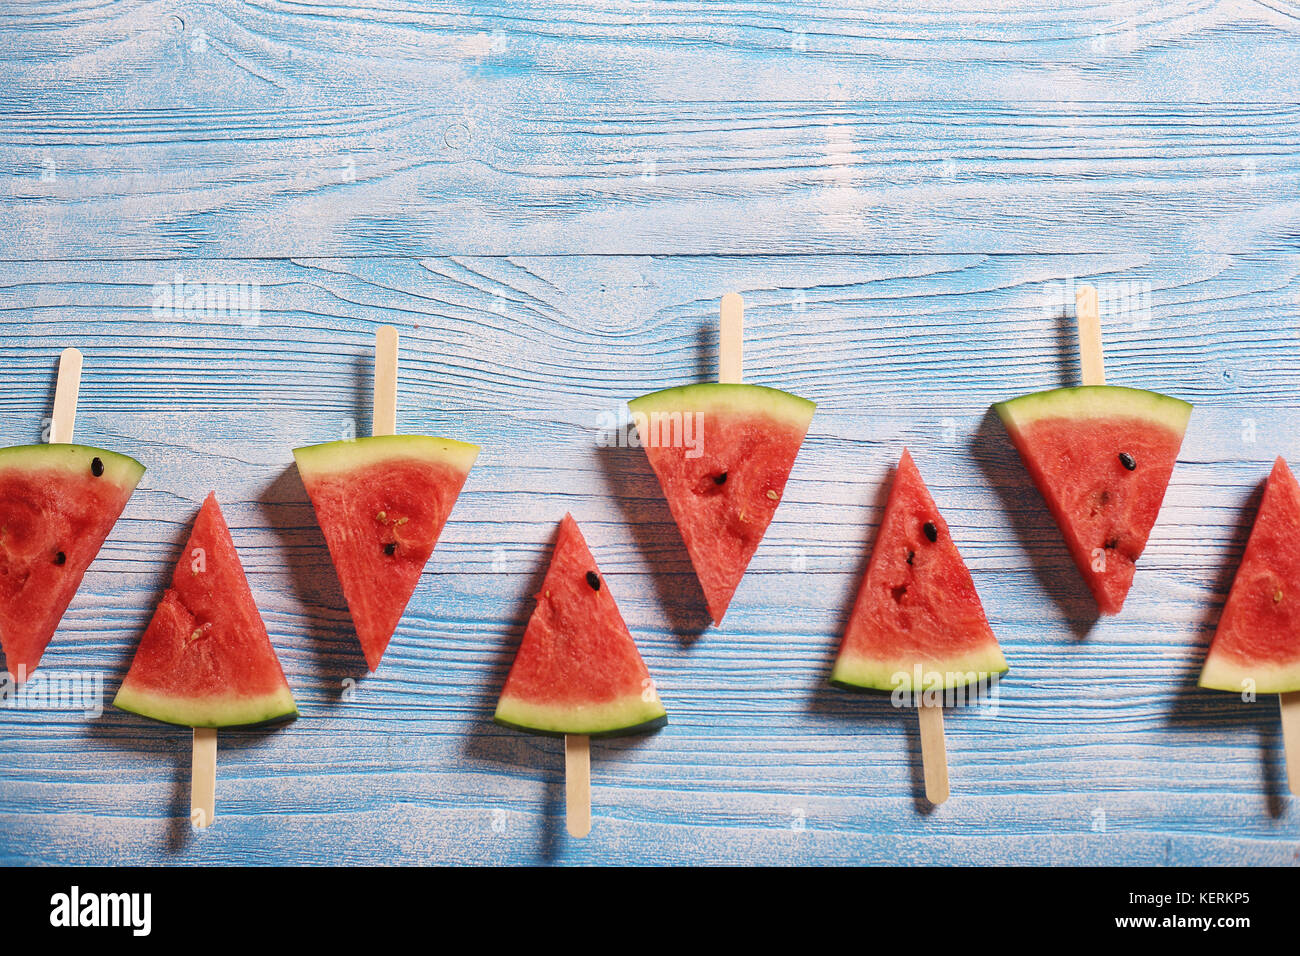 Slices of juicy red watermelon on a wooden background Stock Photo